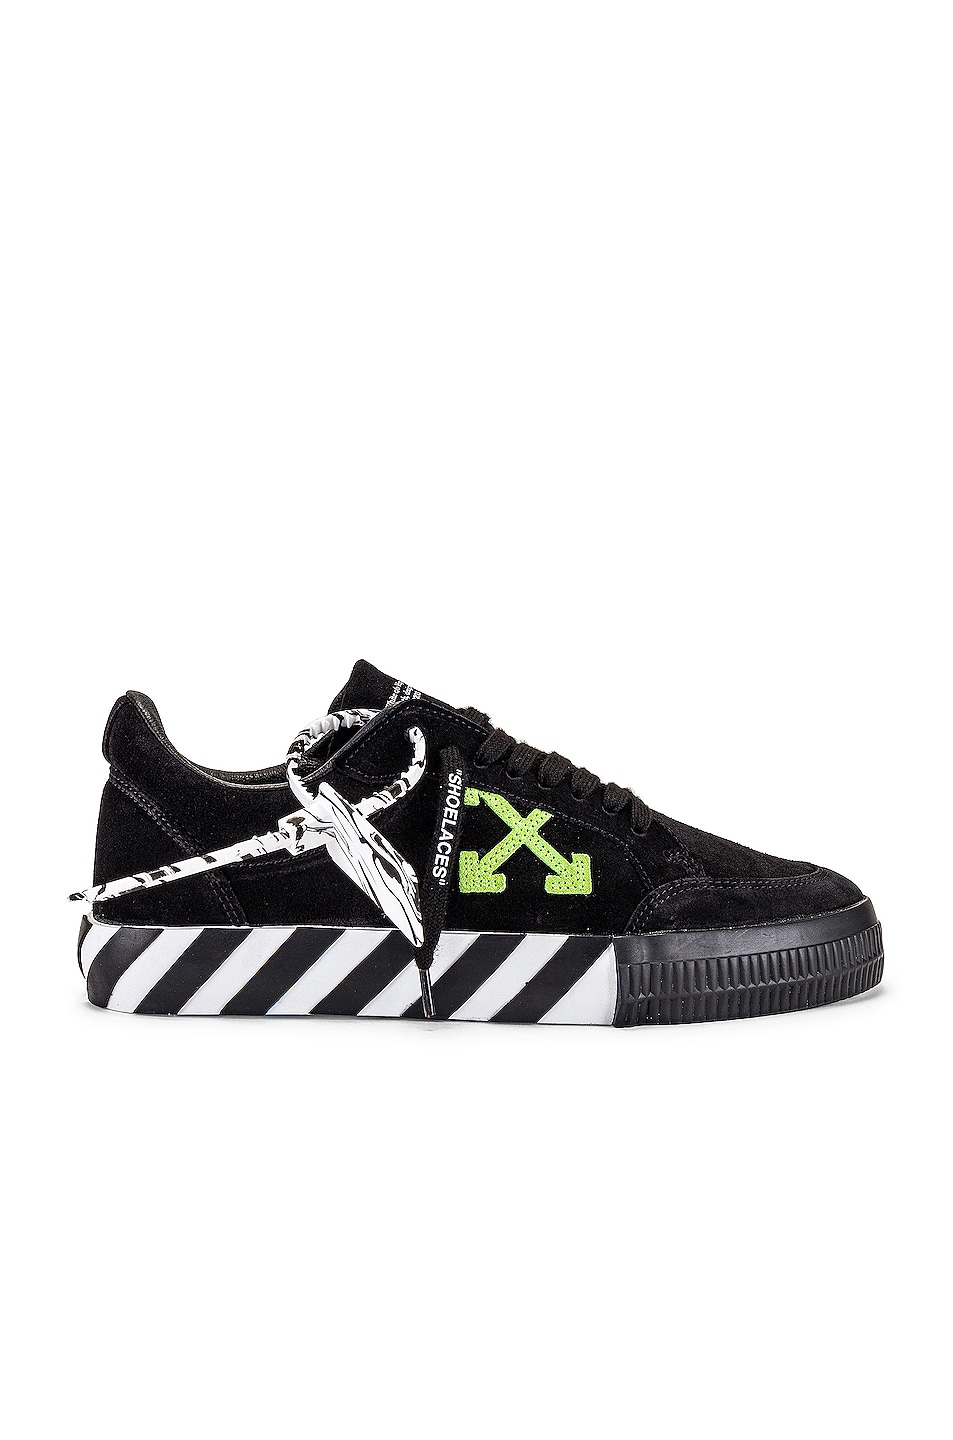 Image 1 of OFF-WHITE Low Vulcanized Suede Sneaker in Black & Green